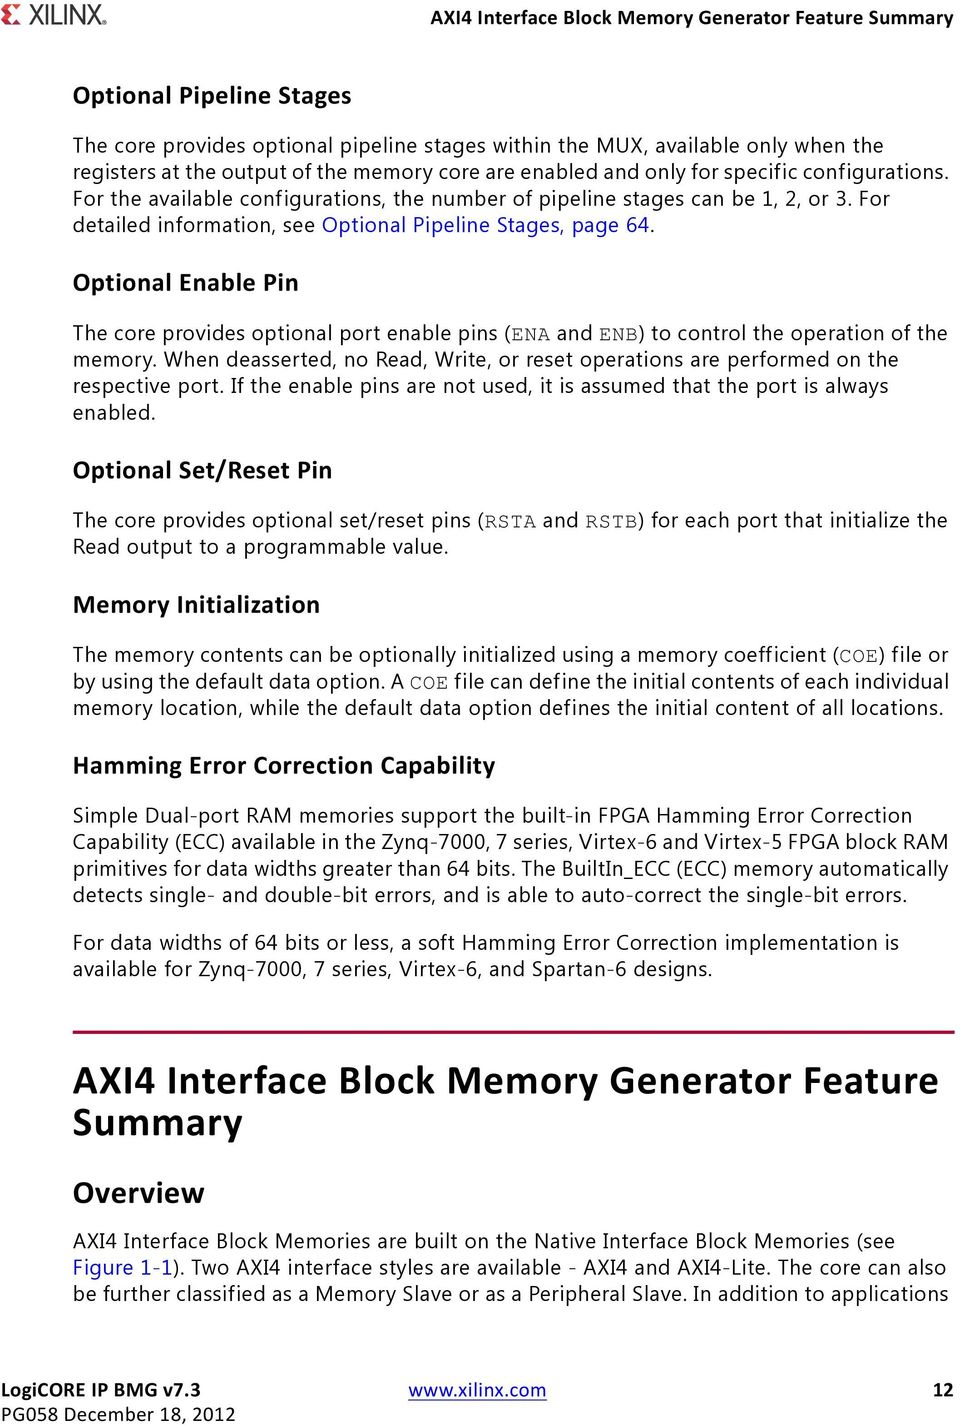 Logicore Ip Block Memory Generator V73 Pdf Virtex 6 Diagram For Detailed Information See Optional Pipeline Stages Page 64 Enable Pin The